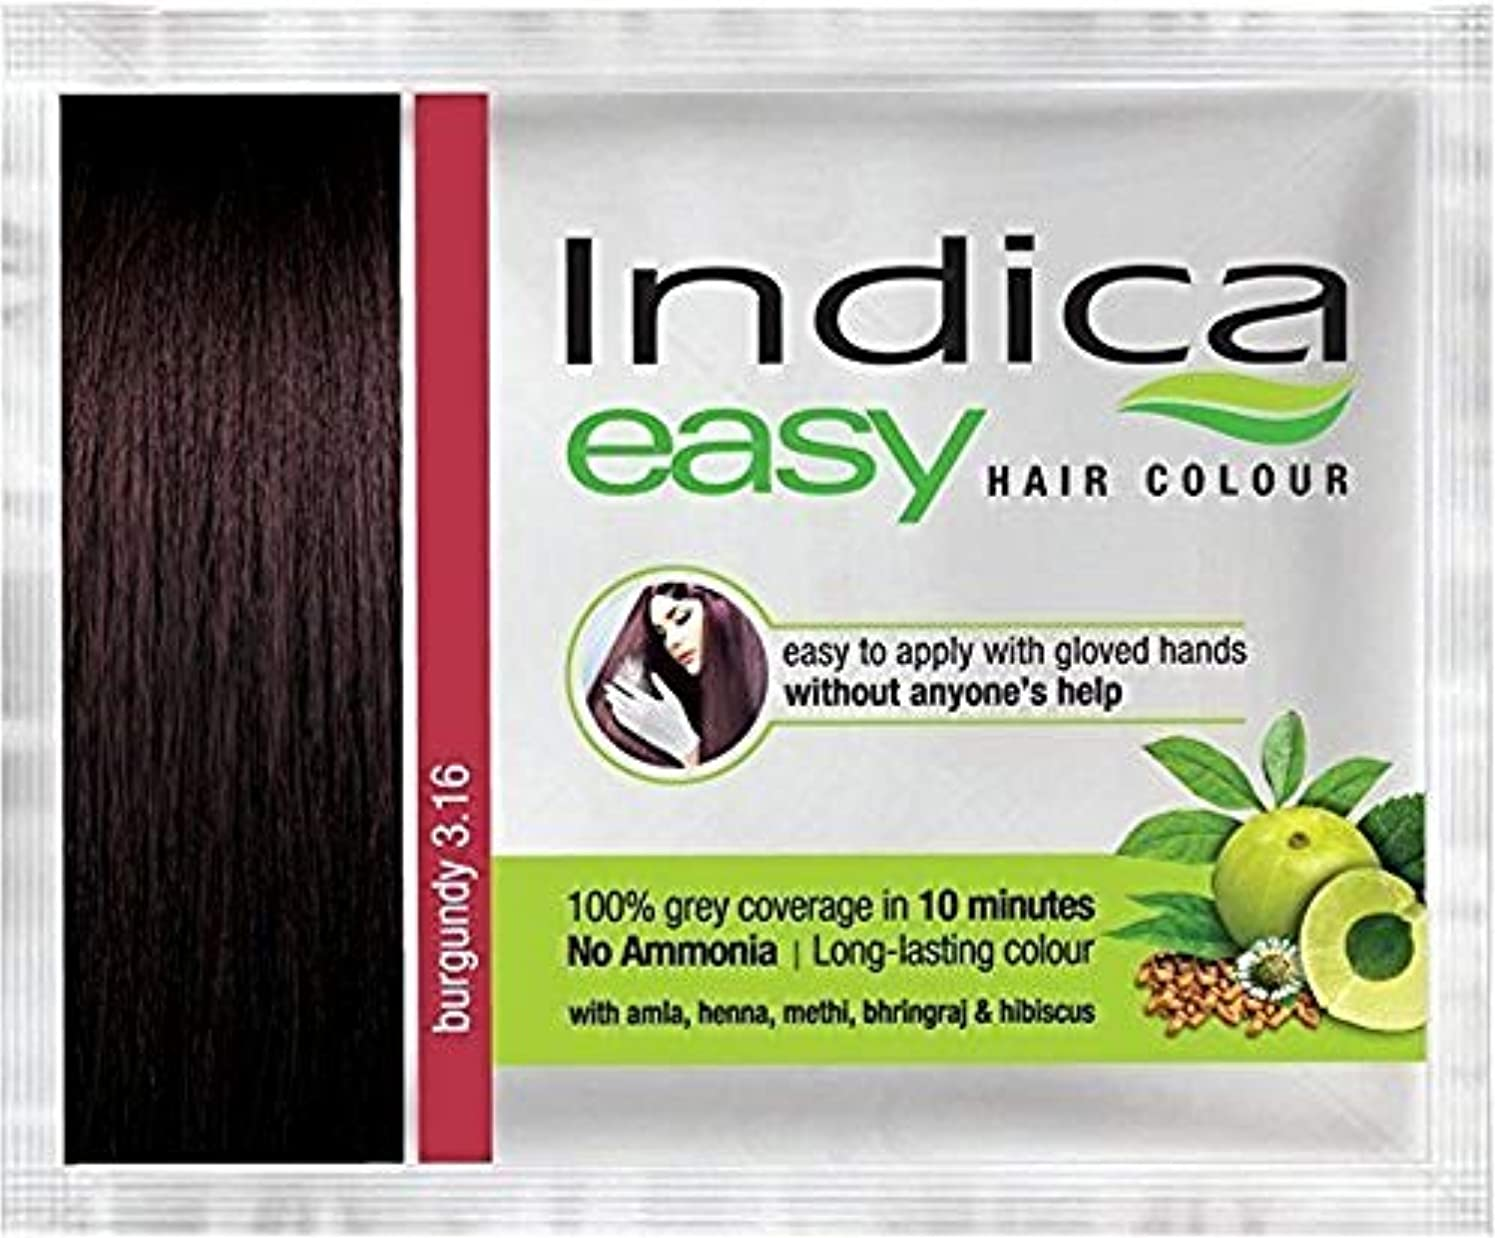 赤道忌み嫌う決定Nexxa 6Pc Indica Easy10 Minutes Herbal Hair Color Shampoo Base Burgundy Herbs